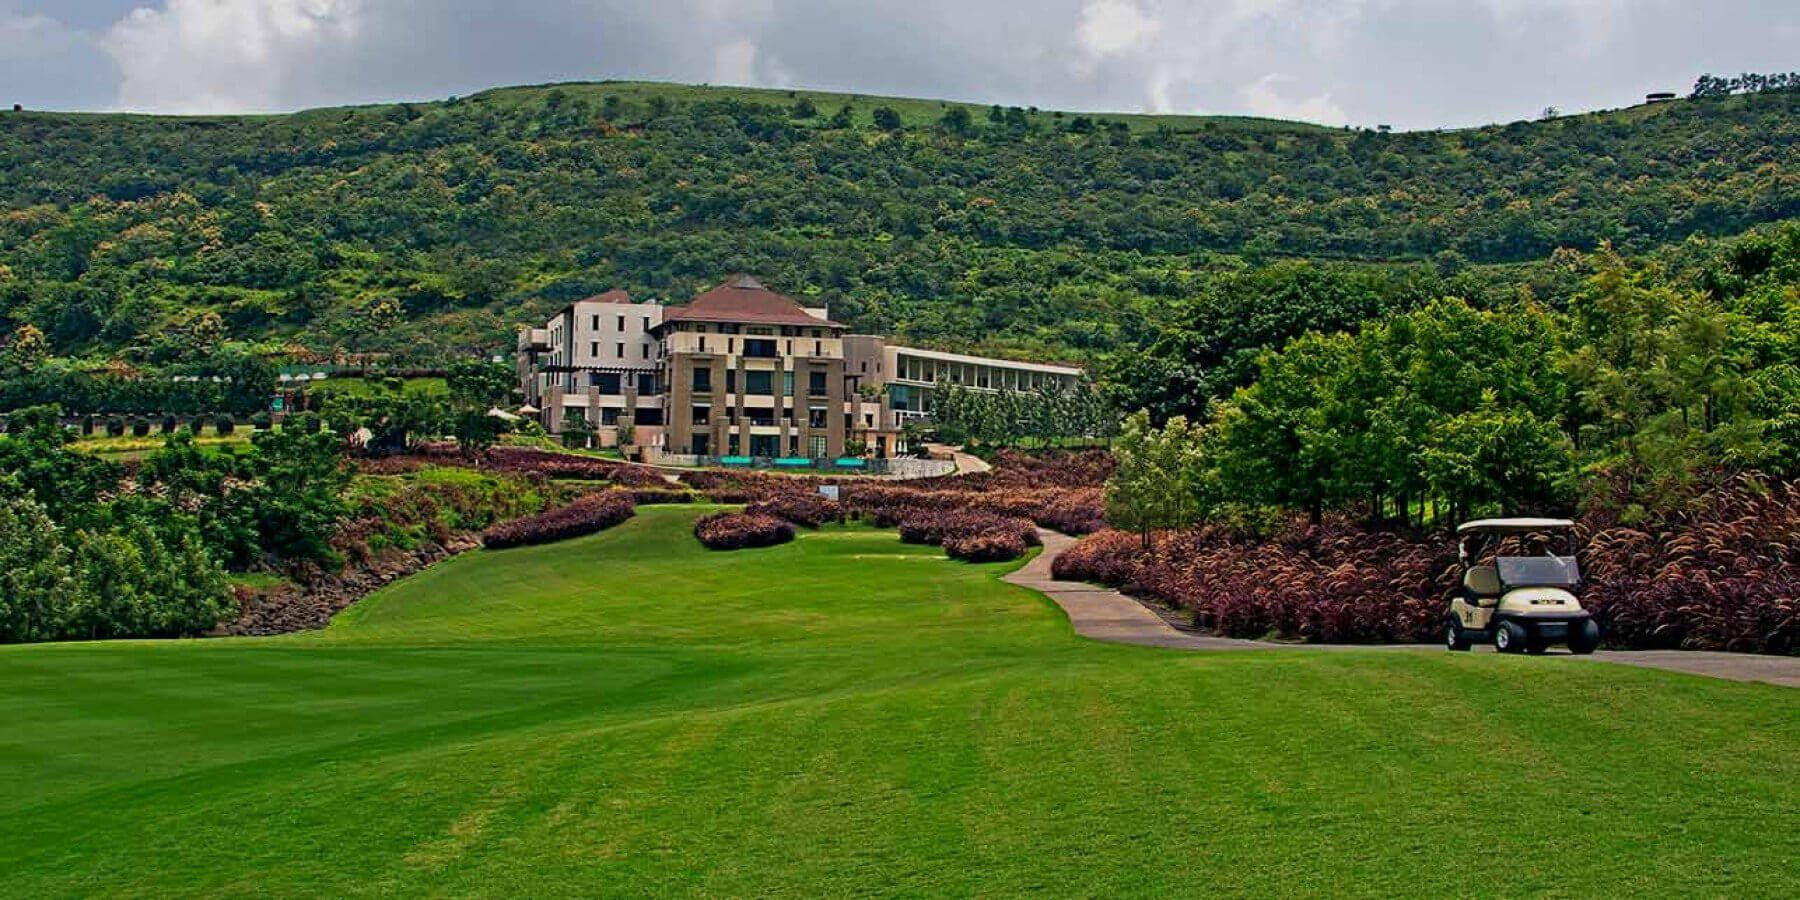 5 Star Resorts In Pune At The Oxford Golf Resort